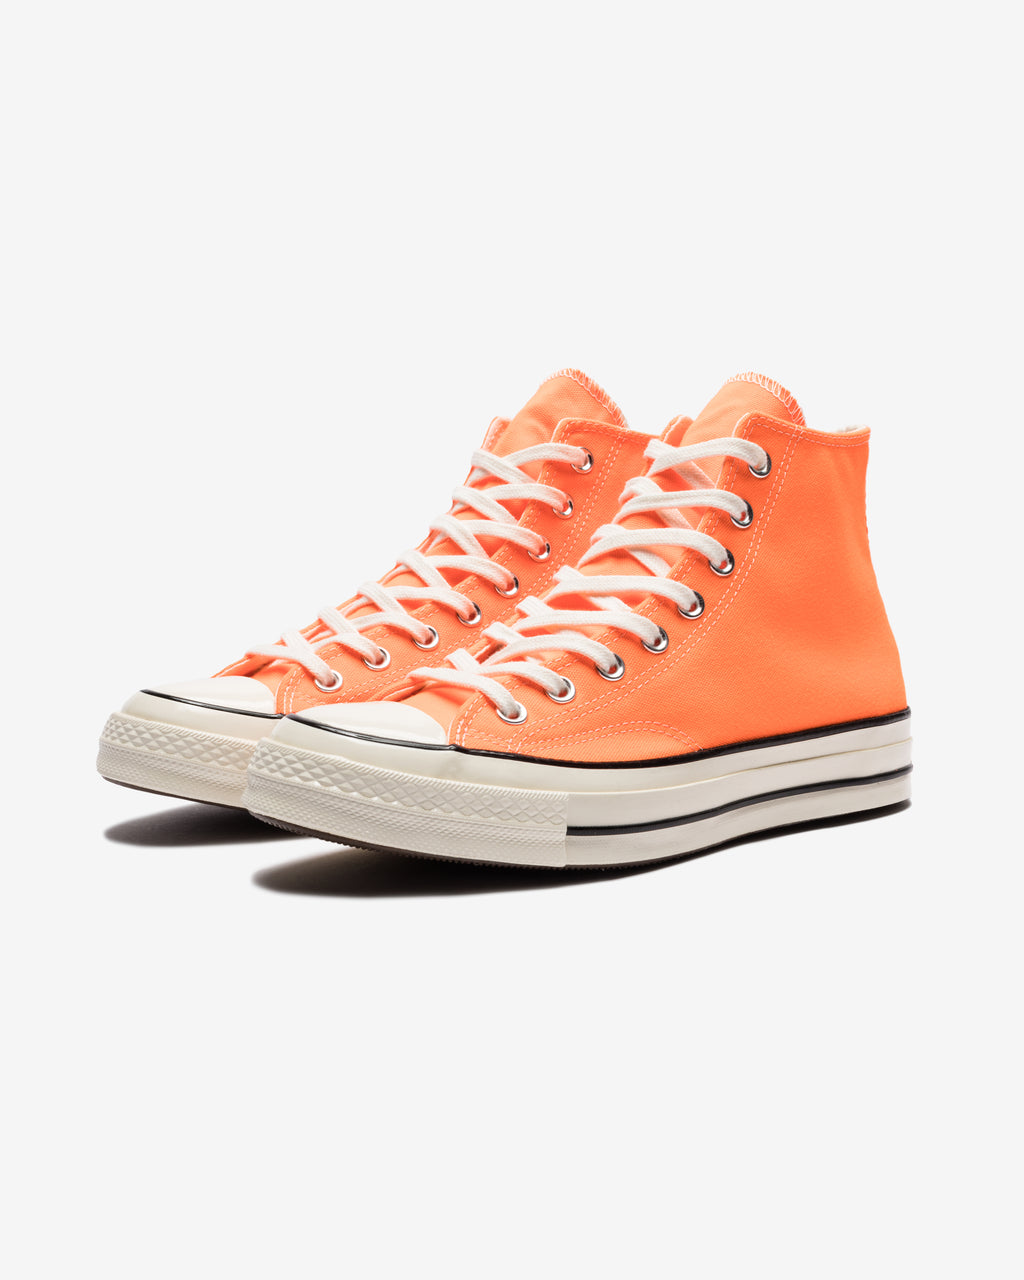 CHUCK 70 HI - TOTALORANGE/ EGRET/ BLACK